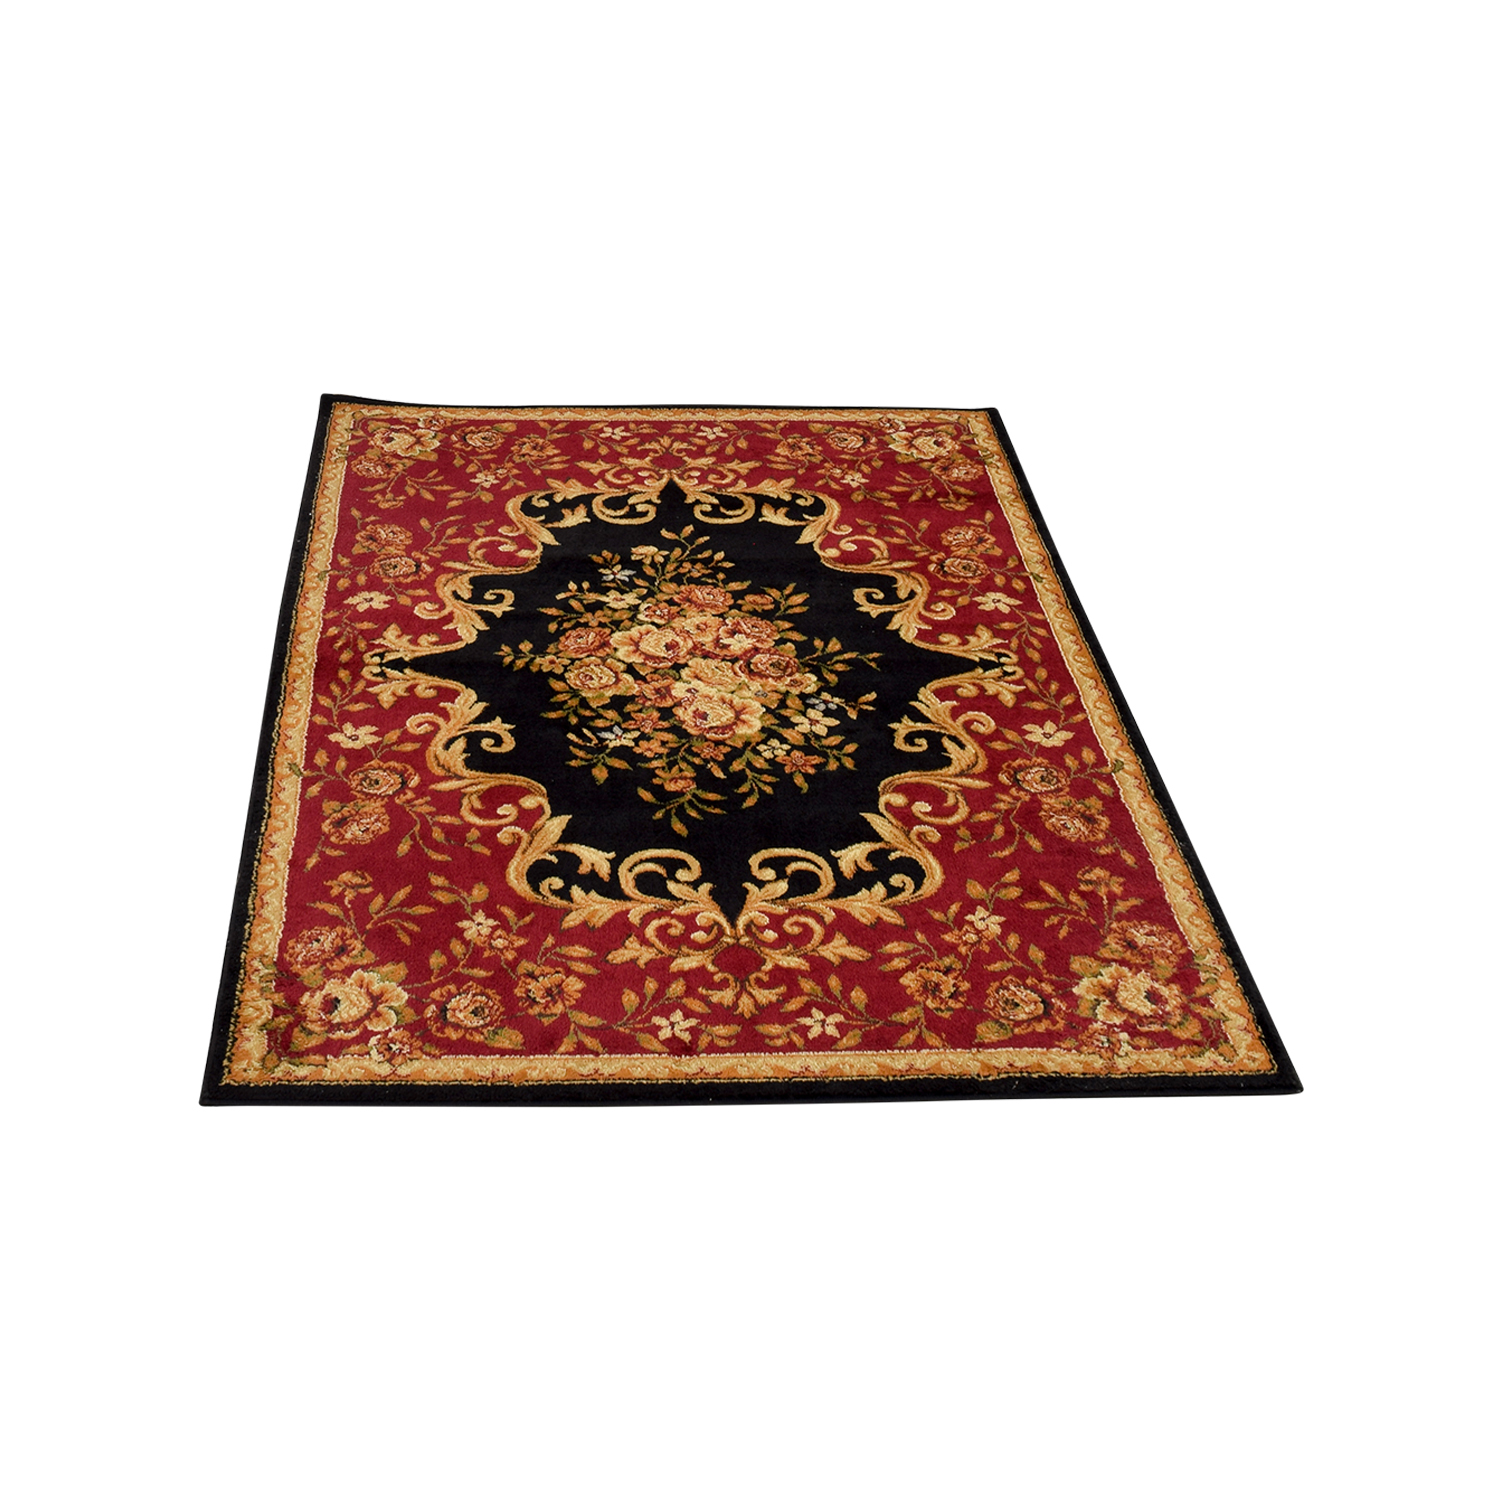 Royalty Royalty Black and Burgundy Floral Rug used